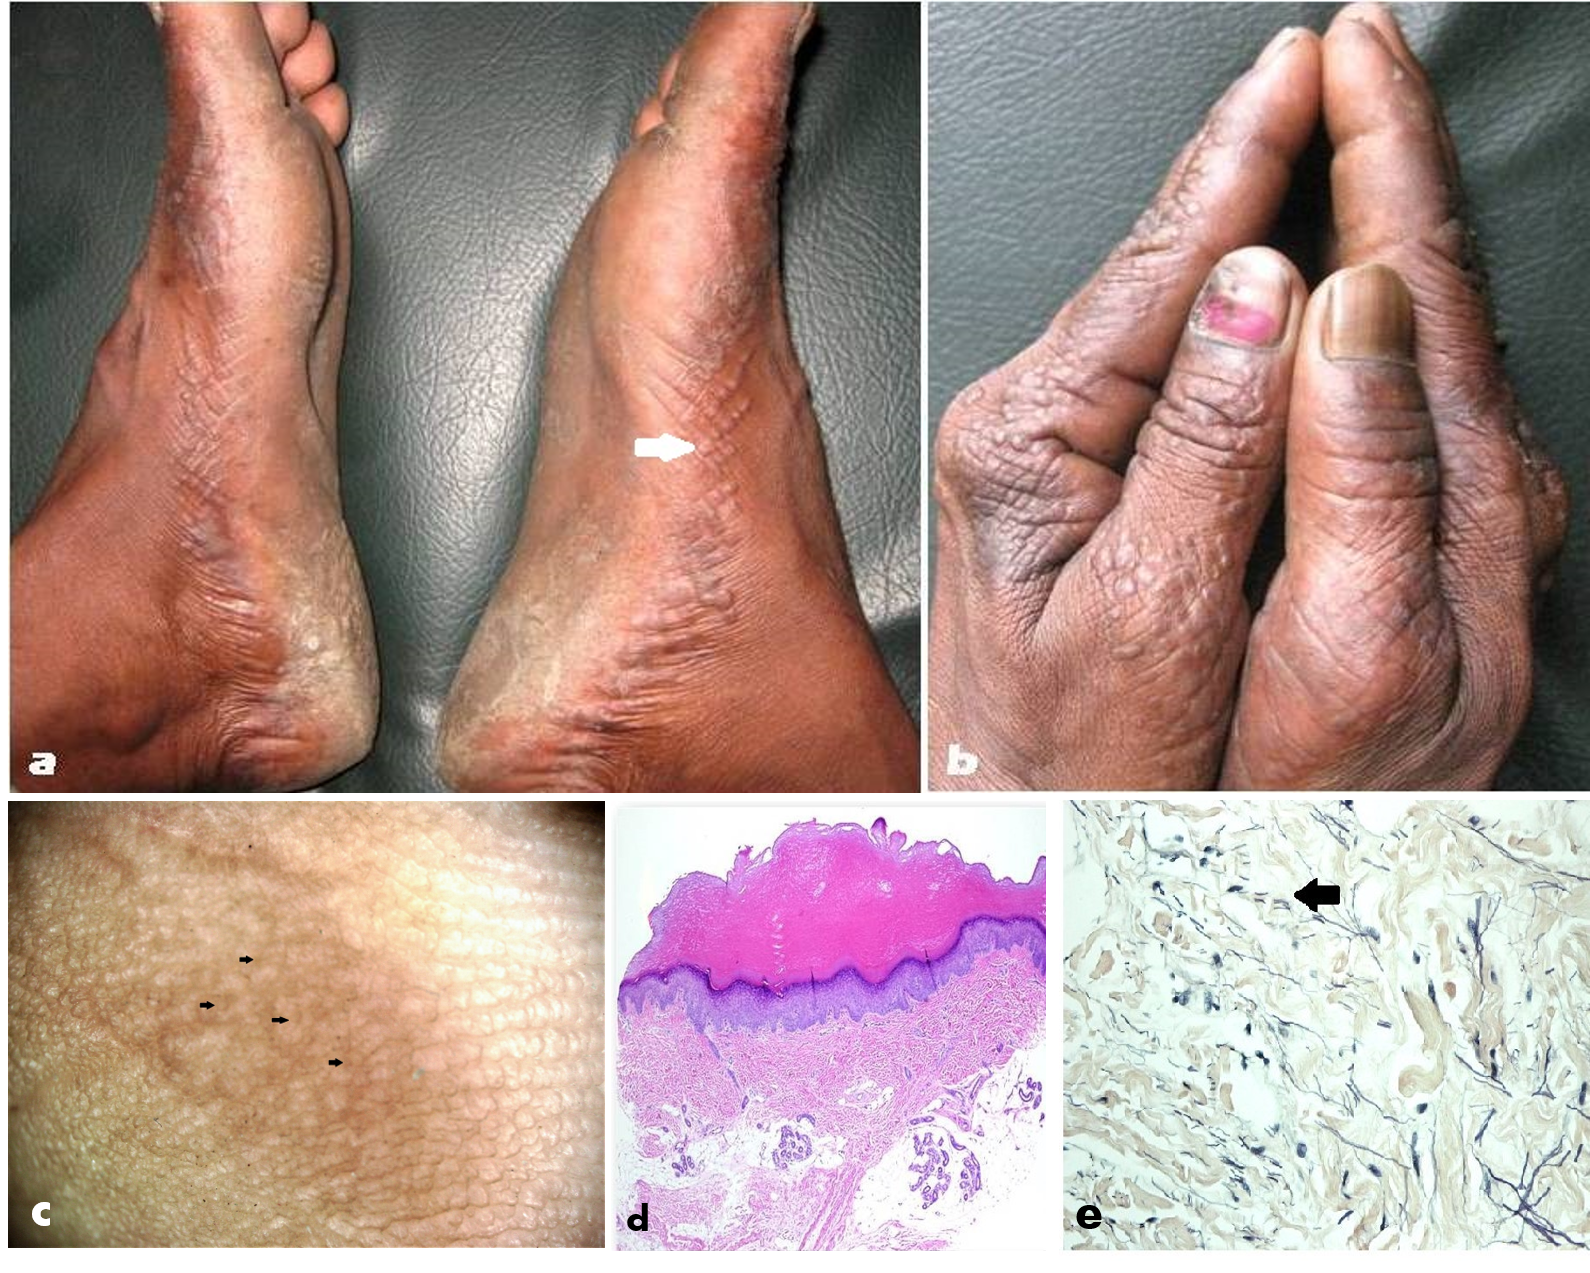 Fig 1 (a) Clinical Picture of Acrokeratoelastoidosis (AKE) of Costa involving the feet. Skin-colored keratotic papules clustered linearly along the medial margins of the feet, with easily appreciable umblication (white arrow) in many lesions; (b) Clinical Picture of Acrokeratoelastoidosis (AKE) of Costa involving the hands revealing similar lesions involving the dorsa as well (inverse papular acrokeratosis); (c) Dermoscopic image demonstrating focal clusters of pale-to-yellowish colored papules with slight umbilication (black arrows) in a few of them, interspersed with pale yellow-colored structureless areas [Escope videodermoscope, 20X, polarized); (d) Histopathology revealing hyperkeratosis, hypergranulosus, mild acanthosis, dermal collagen homogenization and elastorrhesis (fewer and fragmented elastic fibres) [Hematoxylin & Eosin, 400X]; and (e) Histopathology stained with Verhoeff's-Van Gieson (VVG) stain, revealing elastorrhexis (black arrow) more clearly [VVG, 400X].